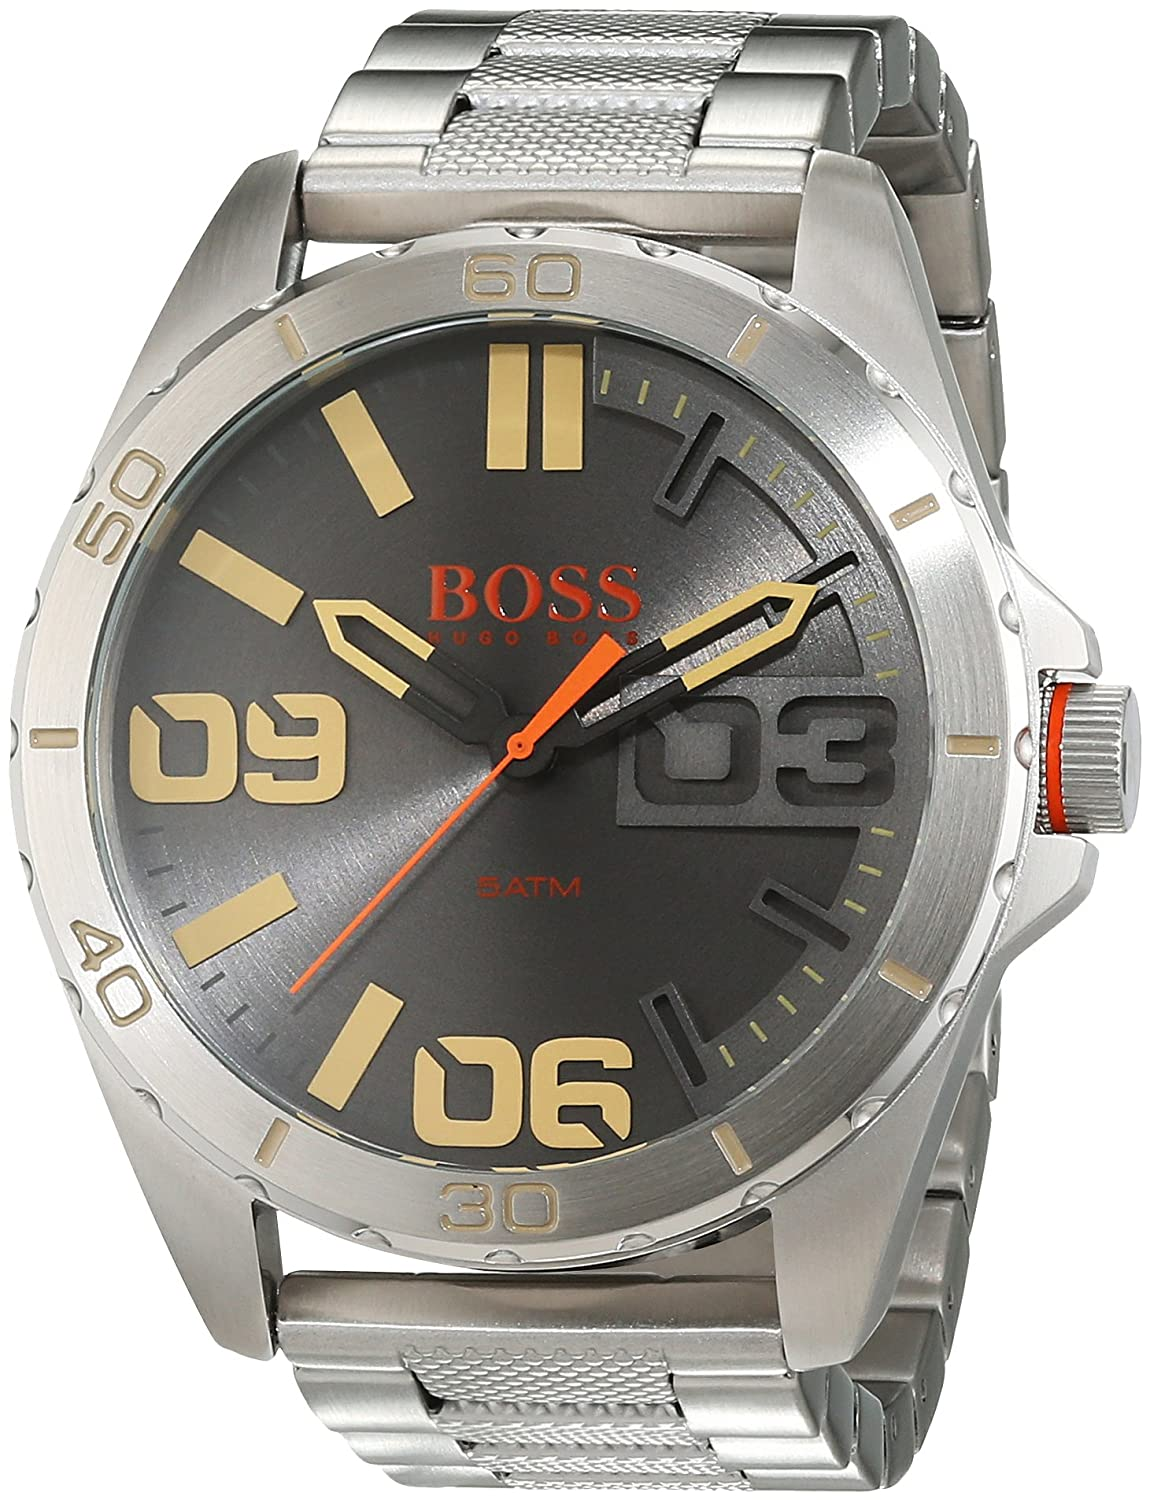 BOSS Orange Herren-Armbanduhr Analog Quarz Edelstahl 1513317